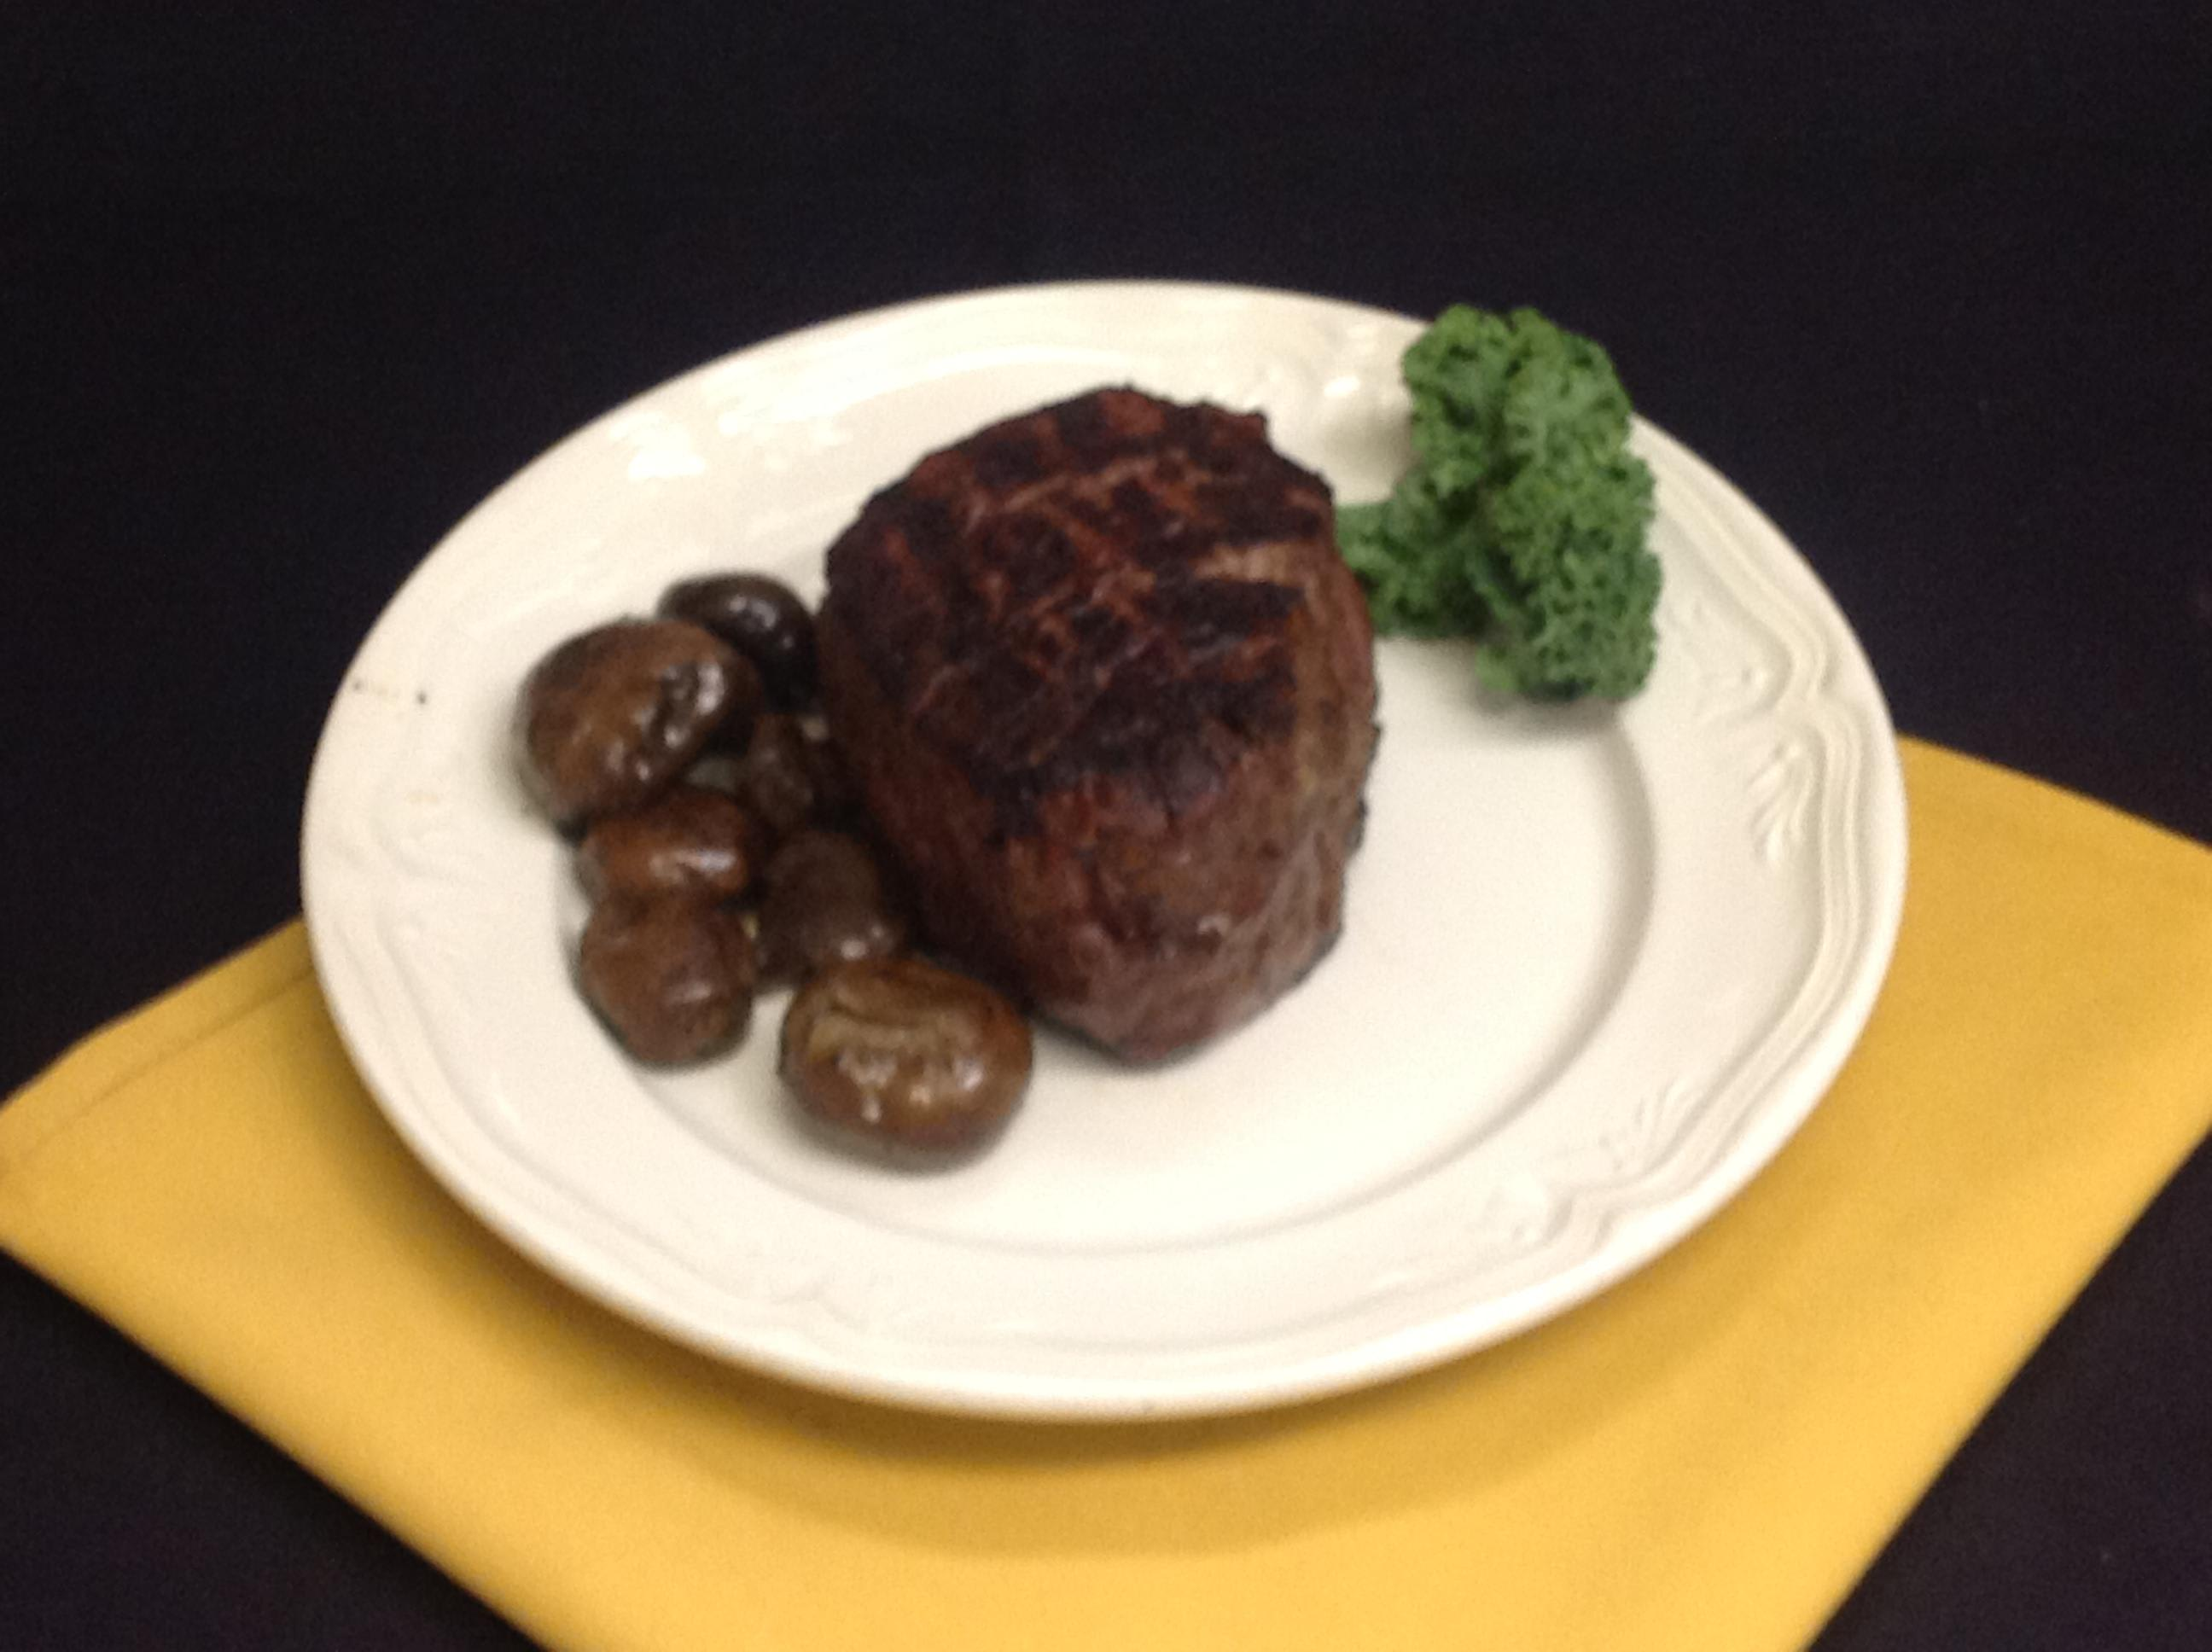 13oz Filet Mignon at Palmers Steakhouse